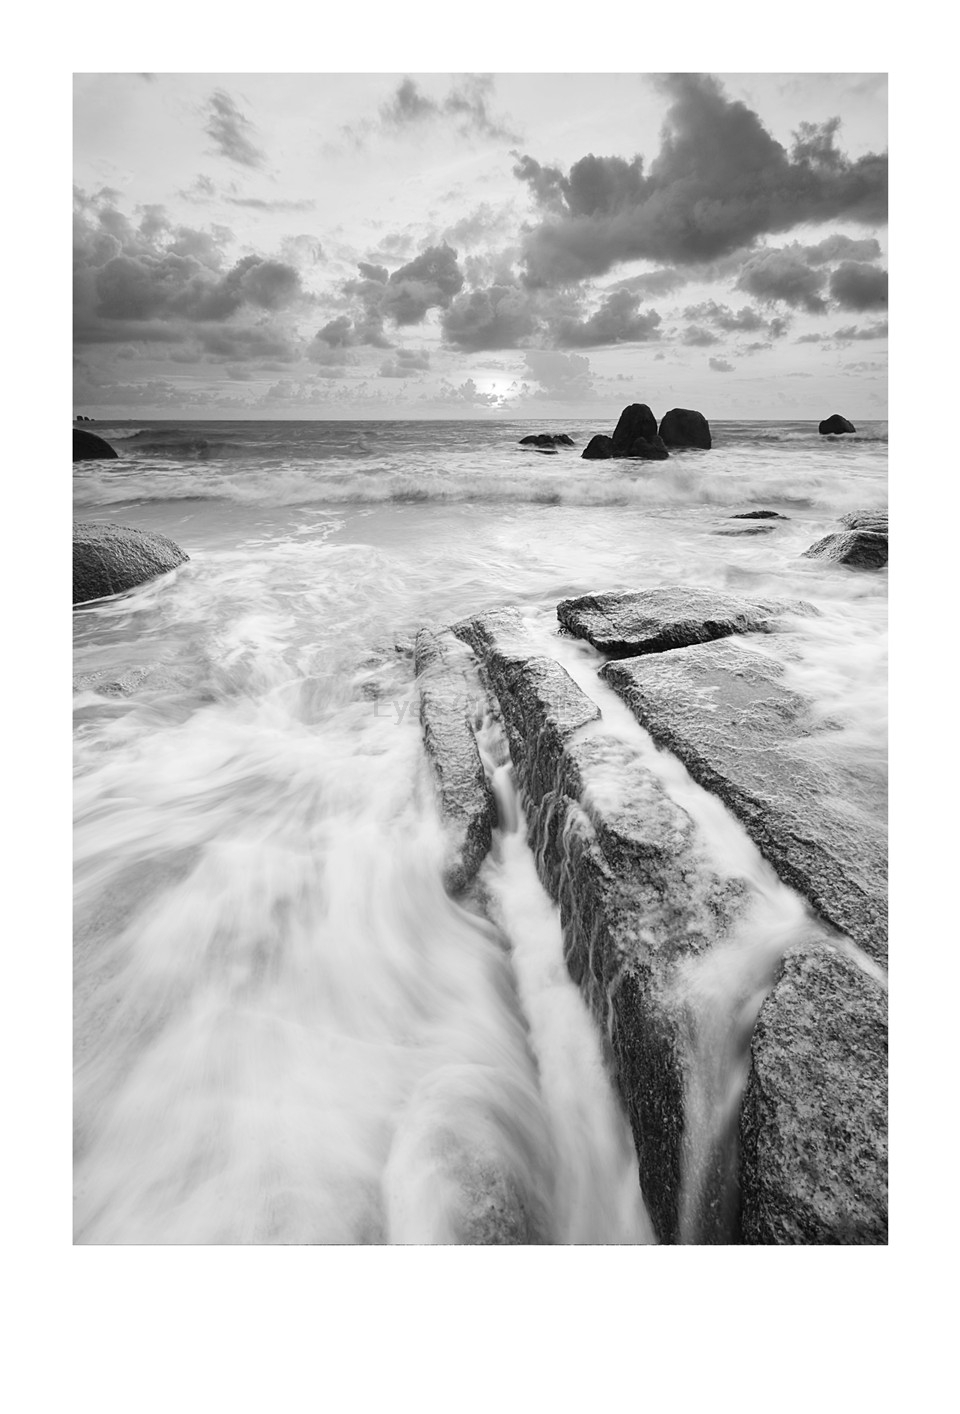 Us 5 54 25 off hd seascape black white photography poster print canvas painting wall picture modern nordic art home decor 3 piece no frame in